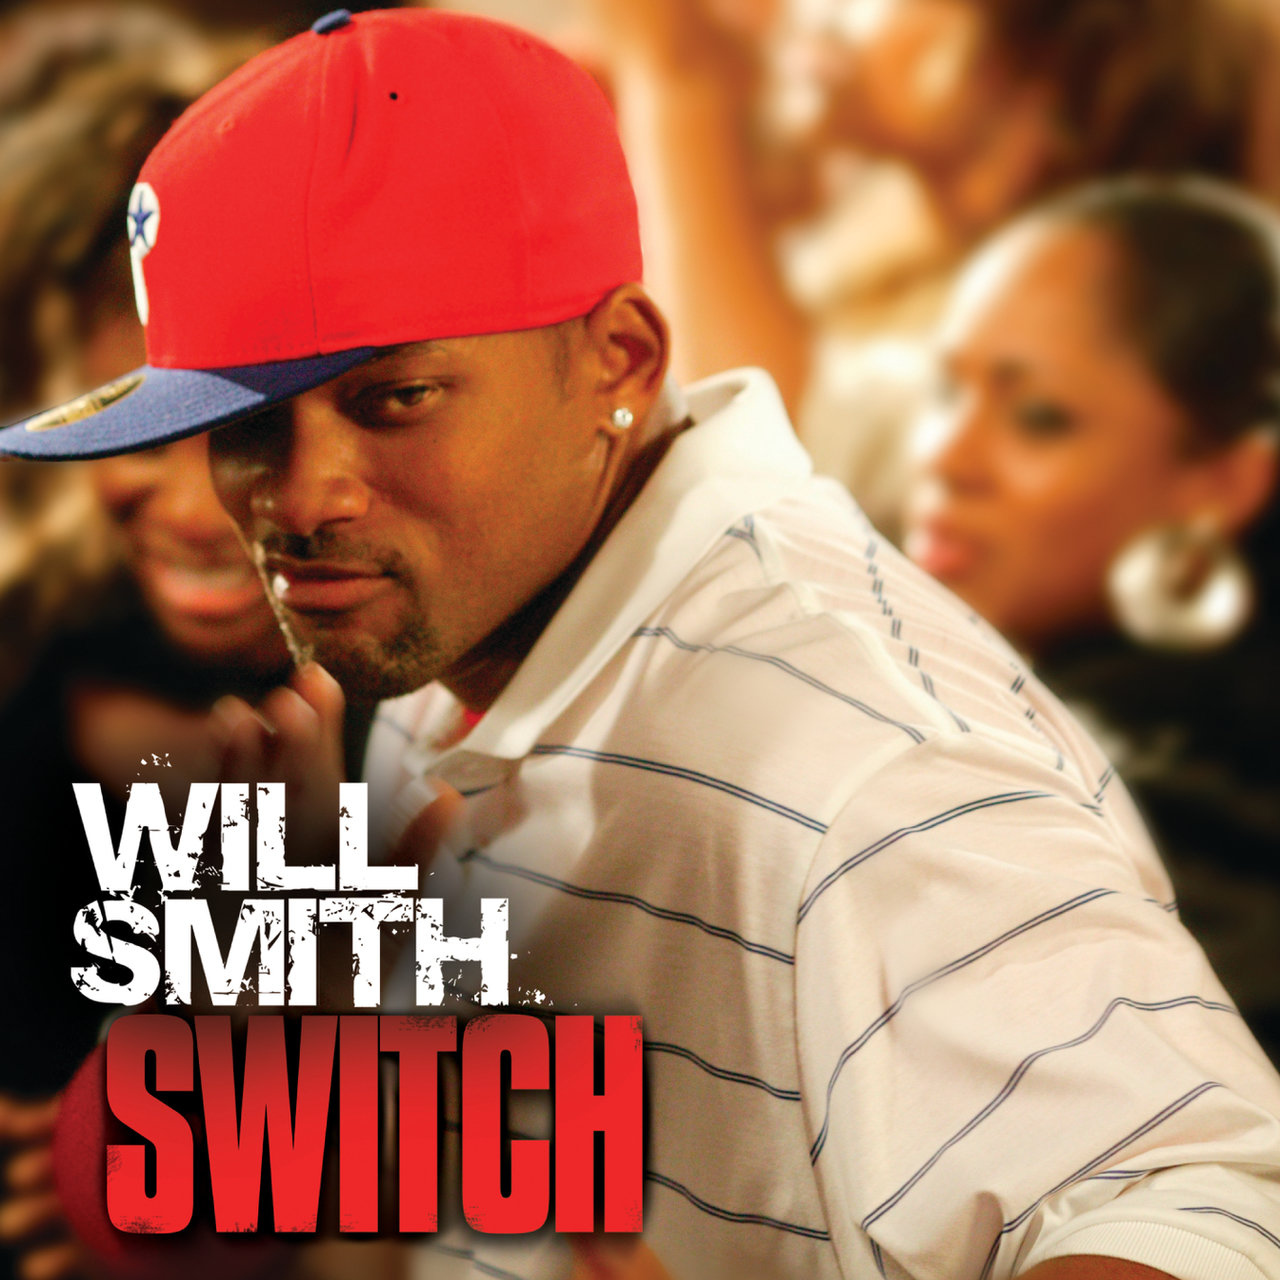 Switch (International Version)